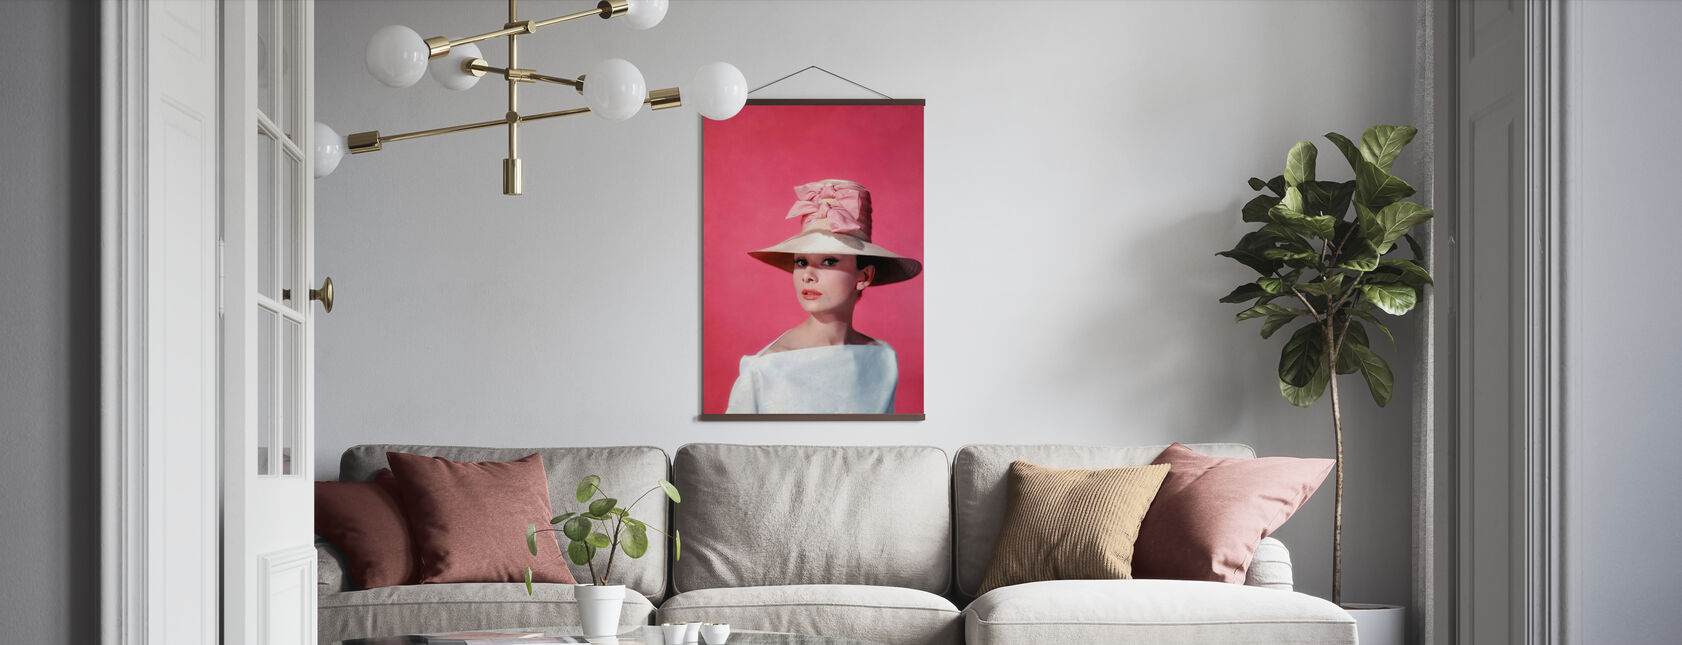 Audrey Hepburn in Funny Face - Poster - Living Room